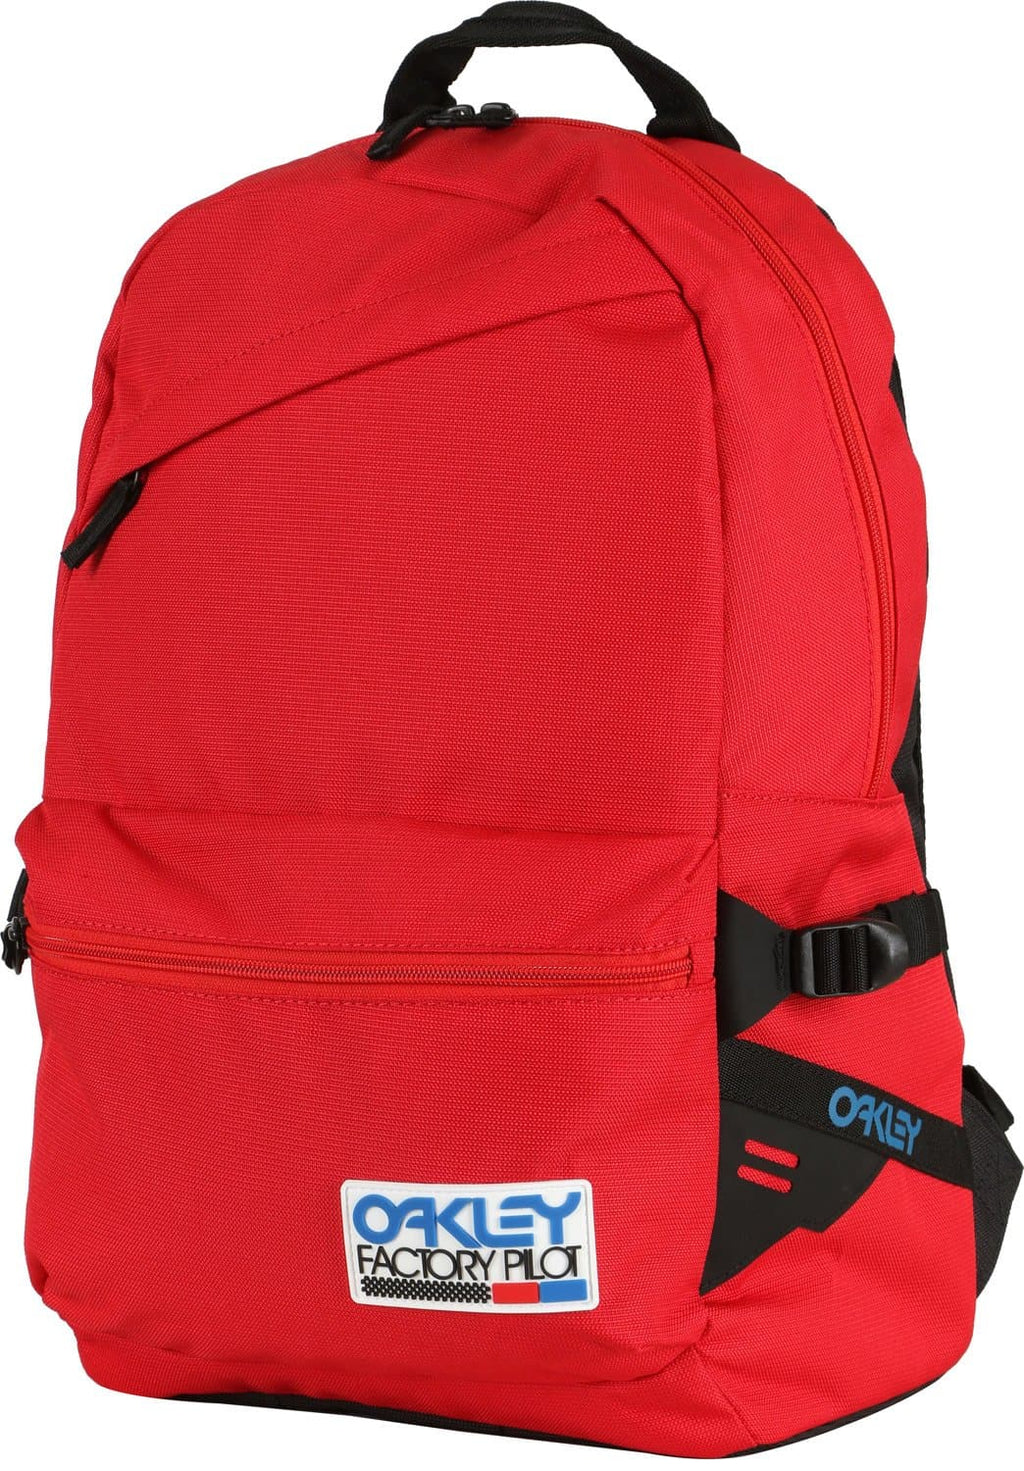 Oakley Factory Pilot Rubber Patch Redline Backpack 20L